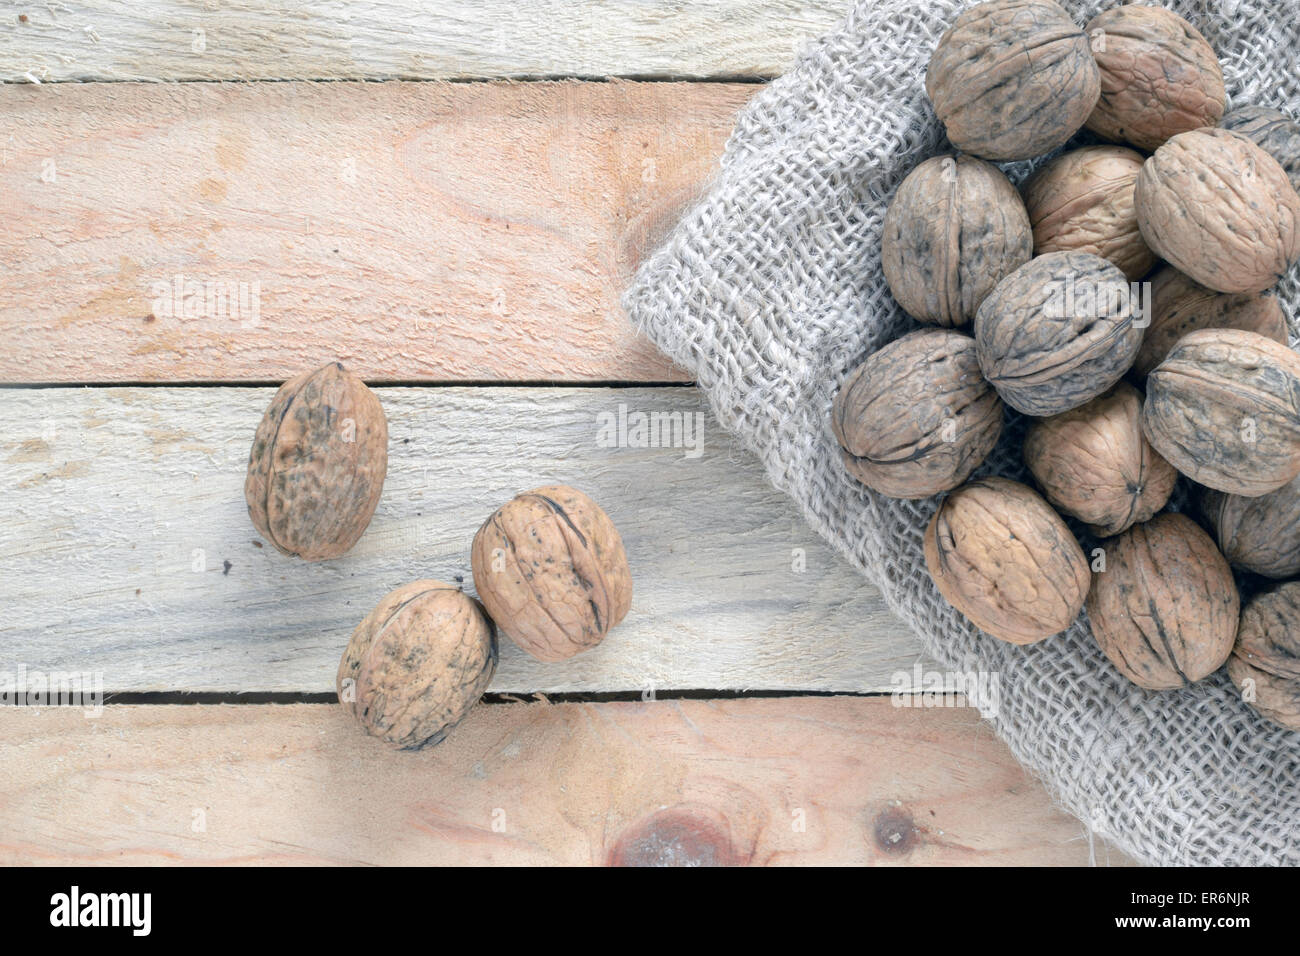 Some walnuts scattered on a table and a sack in a rustic wooden kitchen, top view - Stock Image